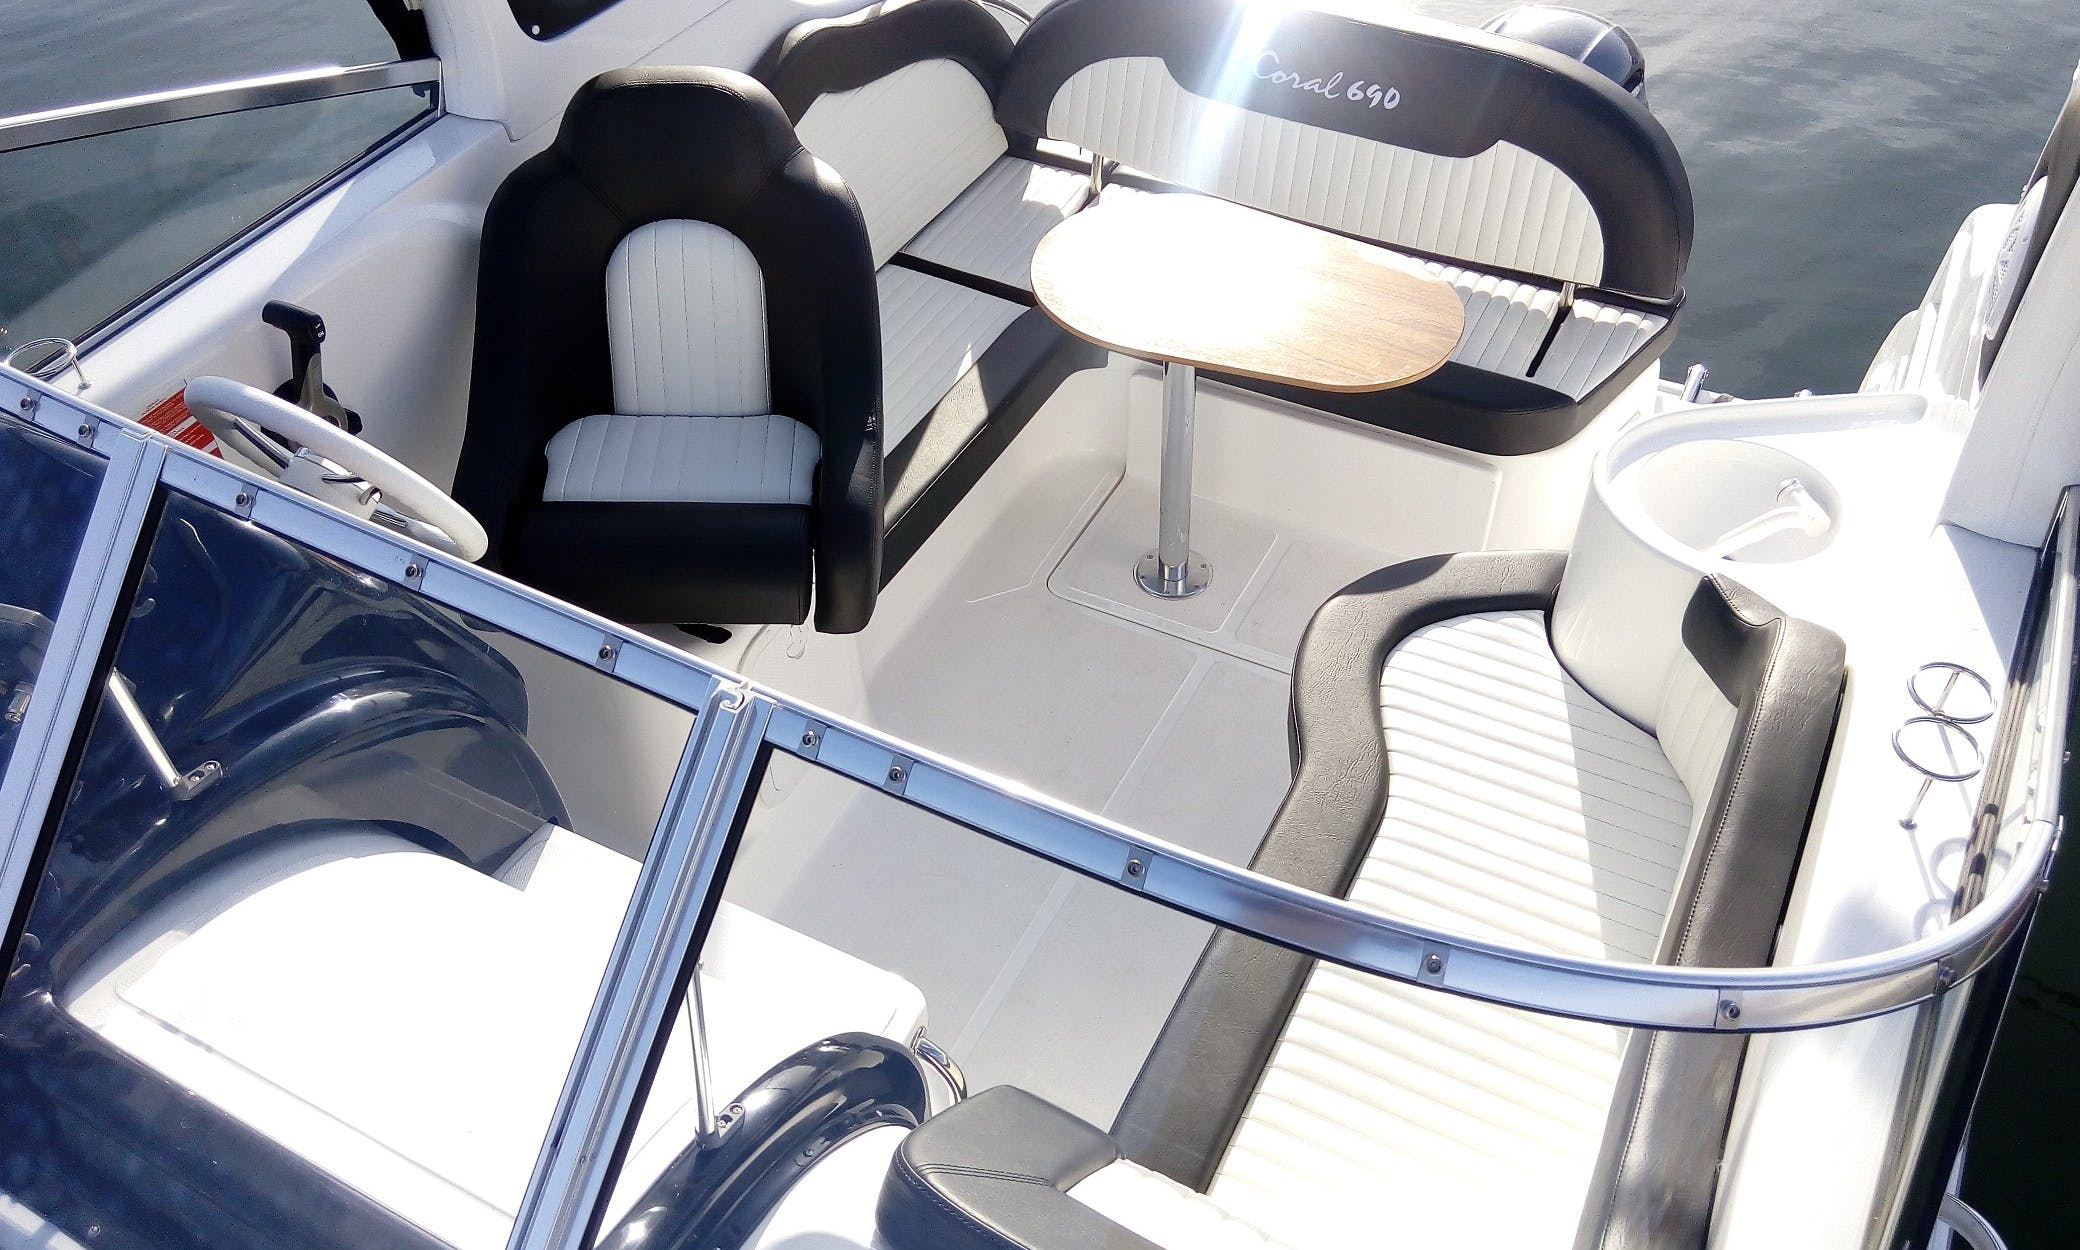 Coral Yacht 690 Sport Cruiser Charter in Gdynia